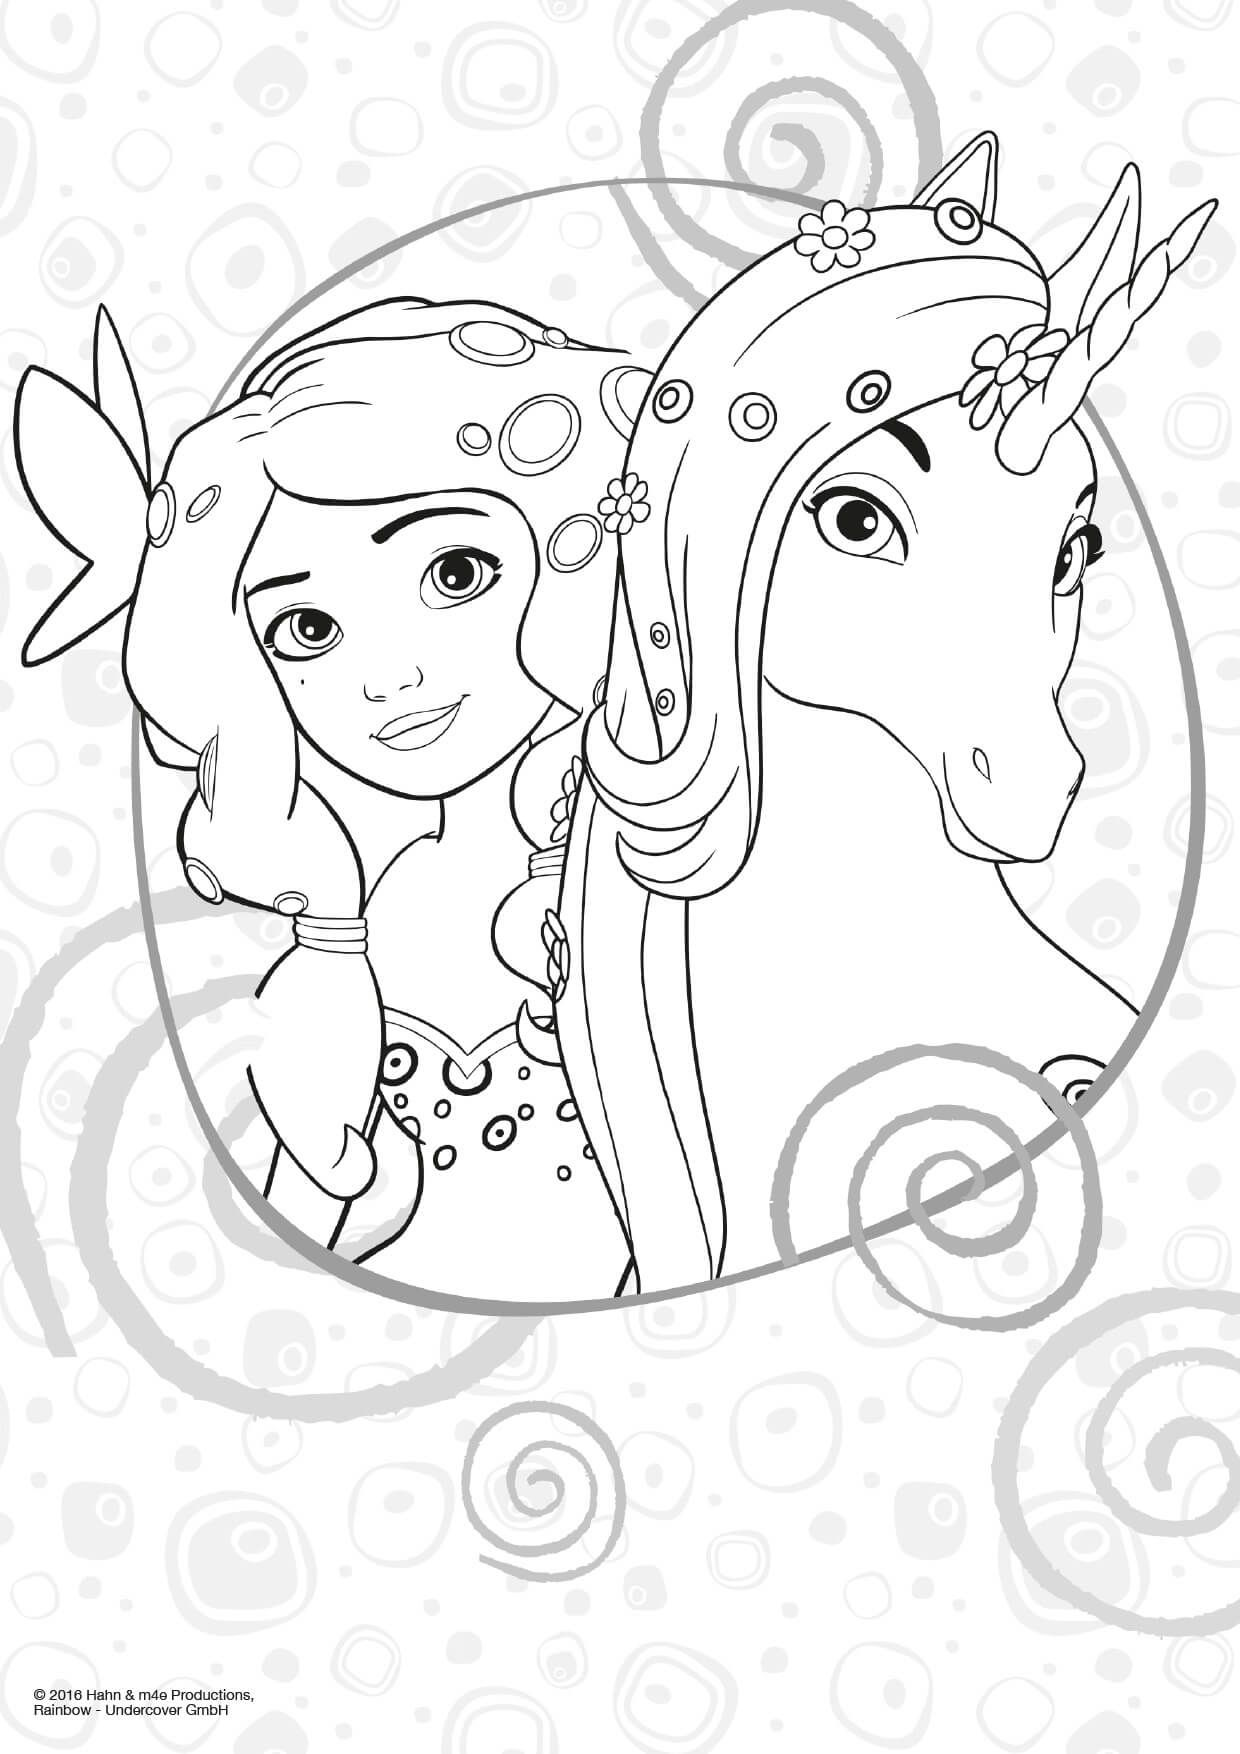 Mia And Me Onchao Ausmalbilder : 41 Best Coloriage Mia Et Moi Images On Pinterest Crayon Art